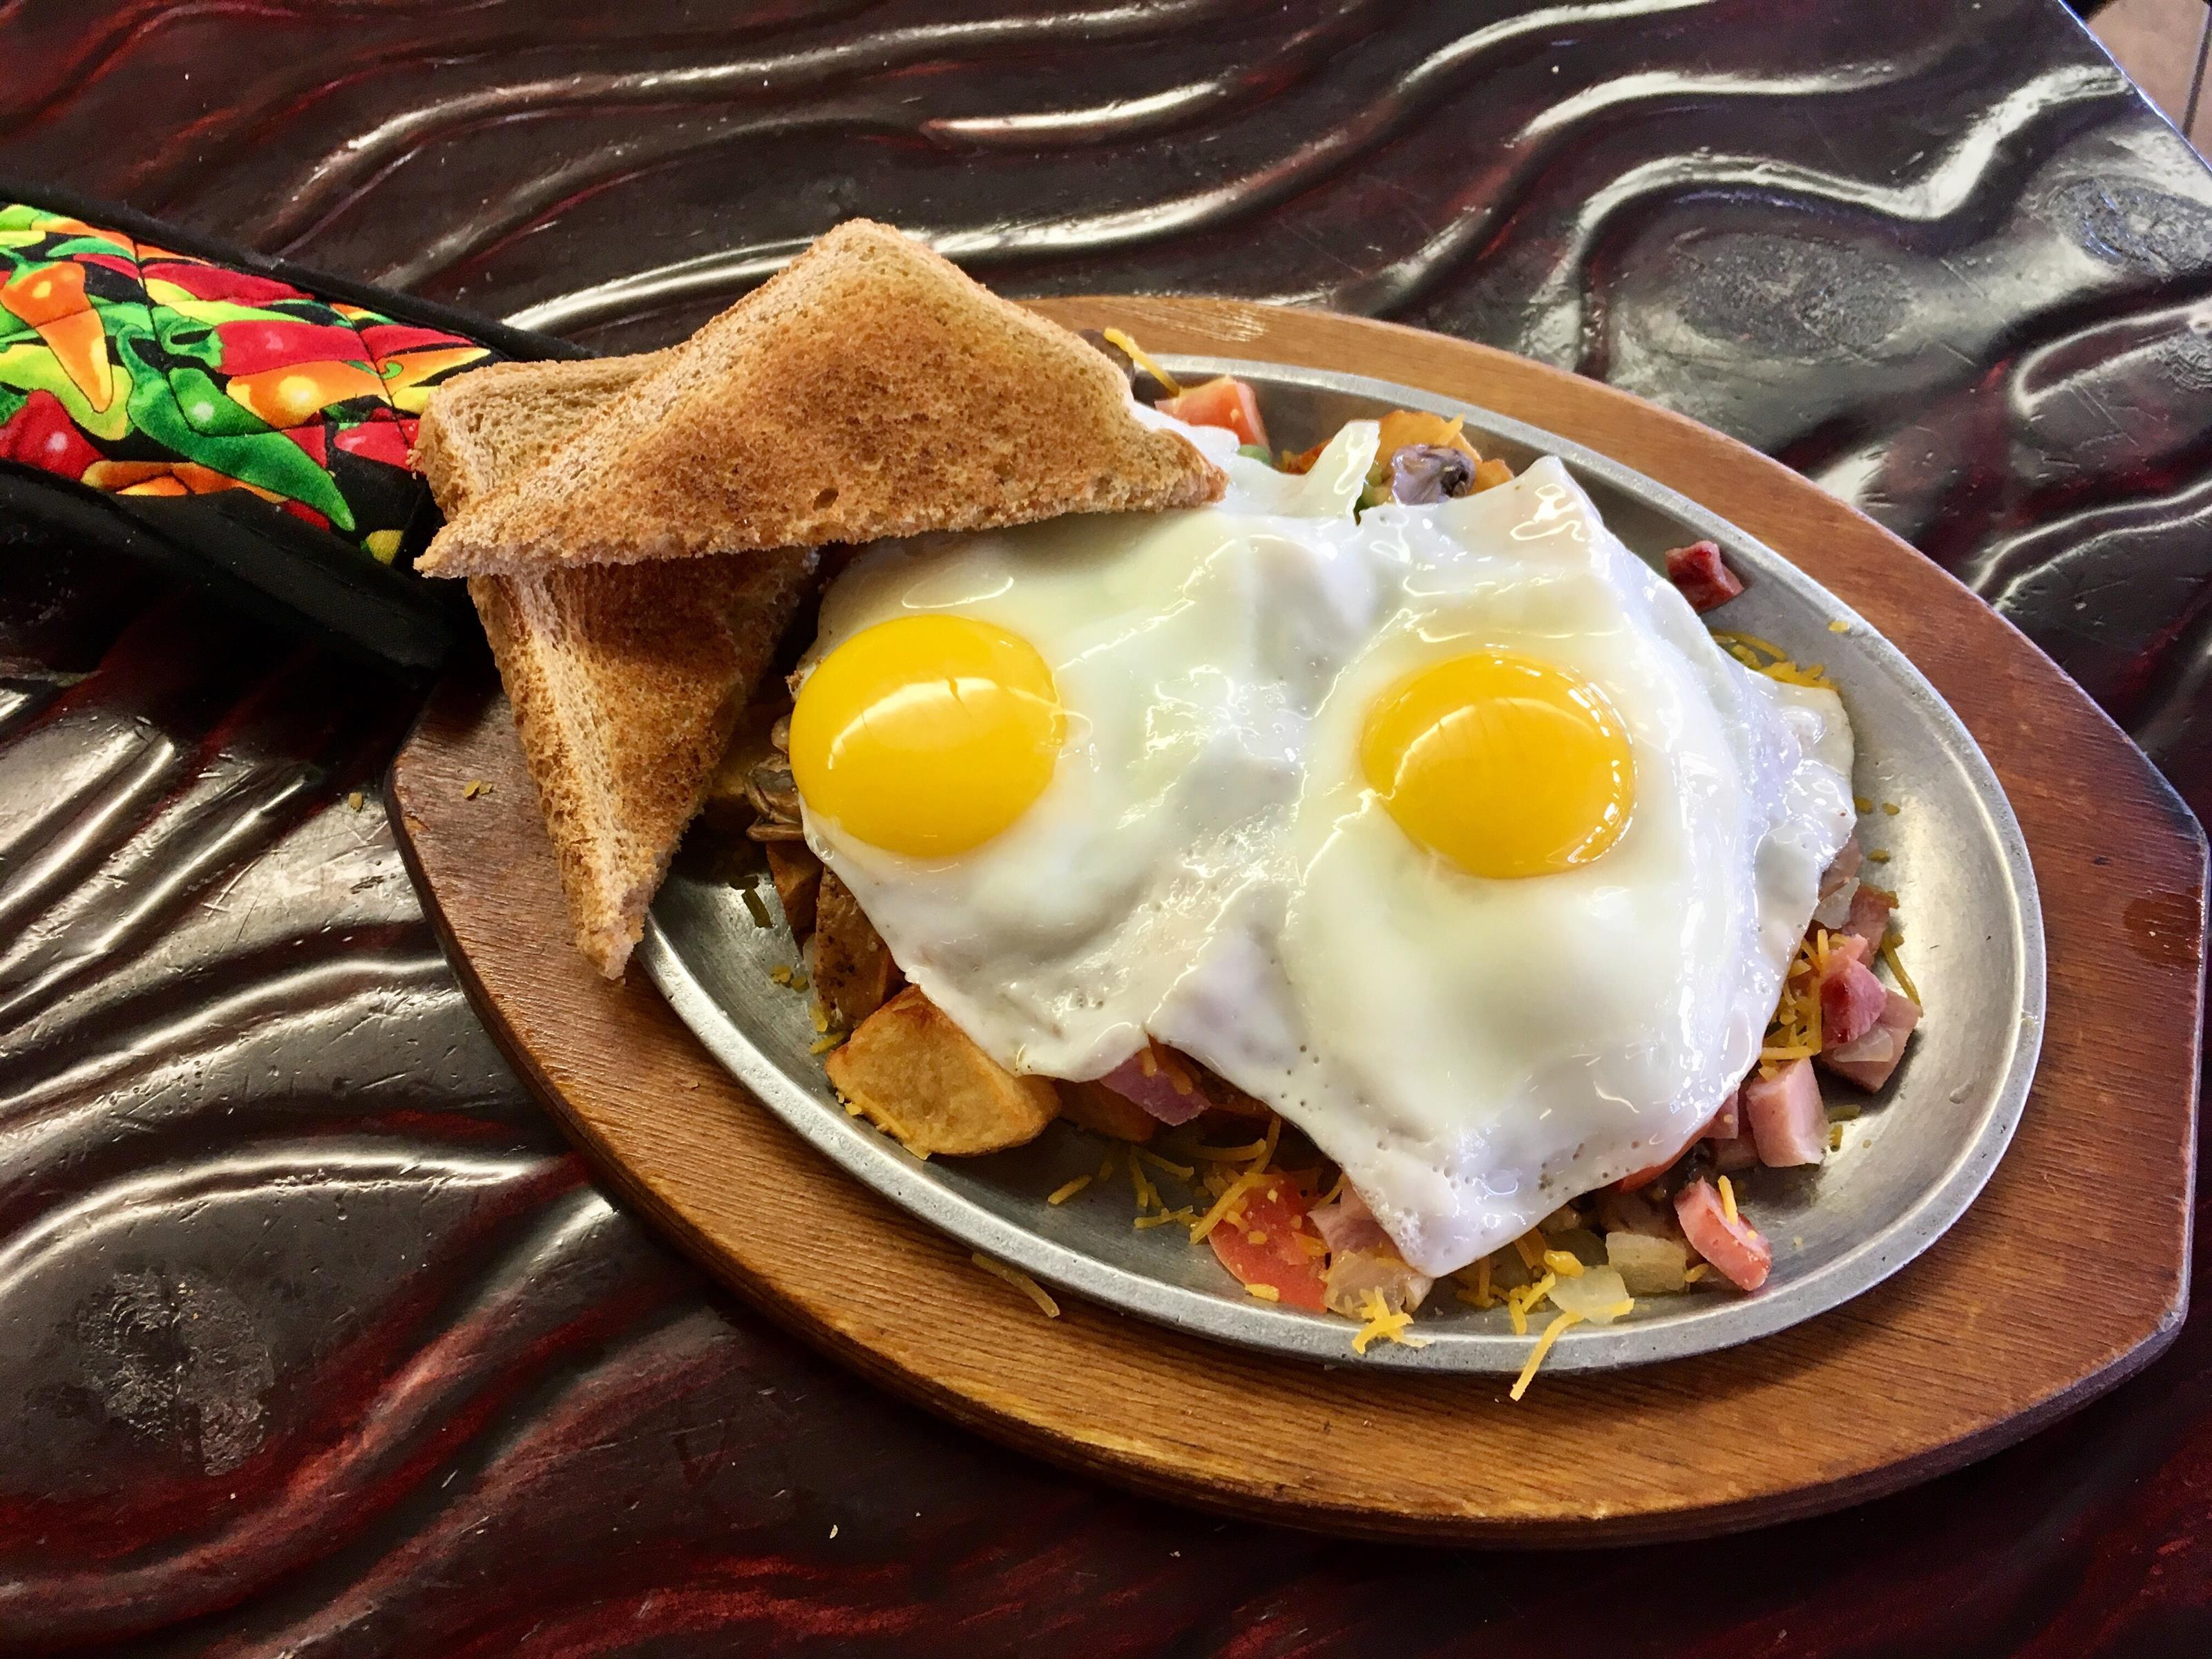 Two sunny side up eggs, served over fries, cheddar, slices of tomato and cubes of ham and bacon